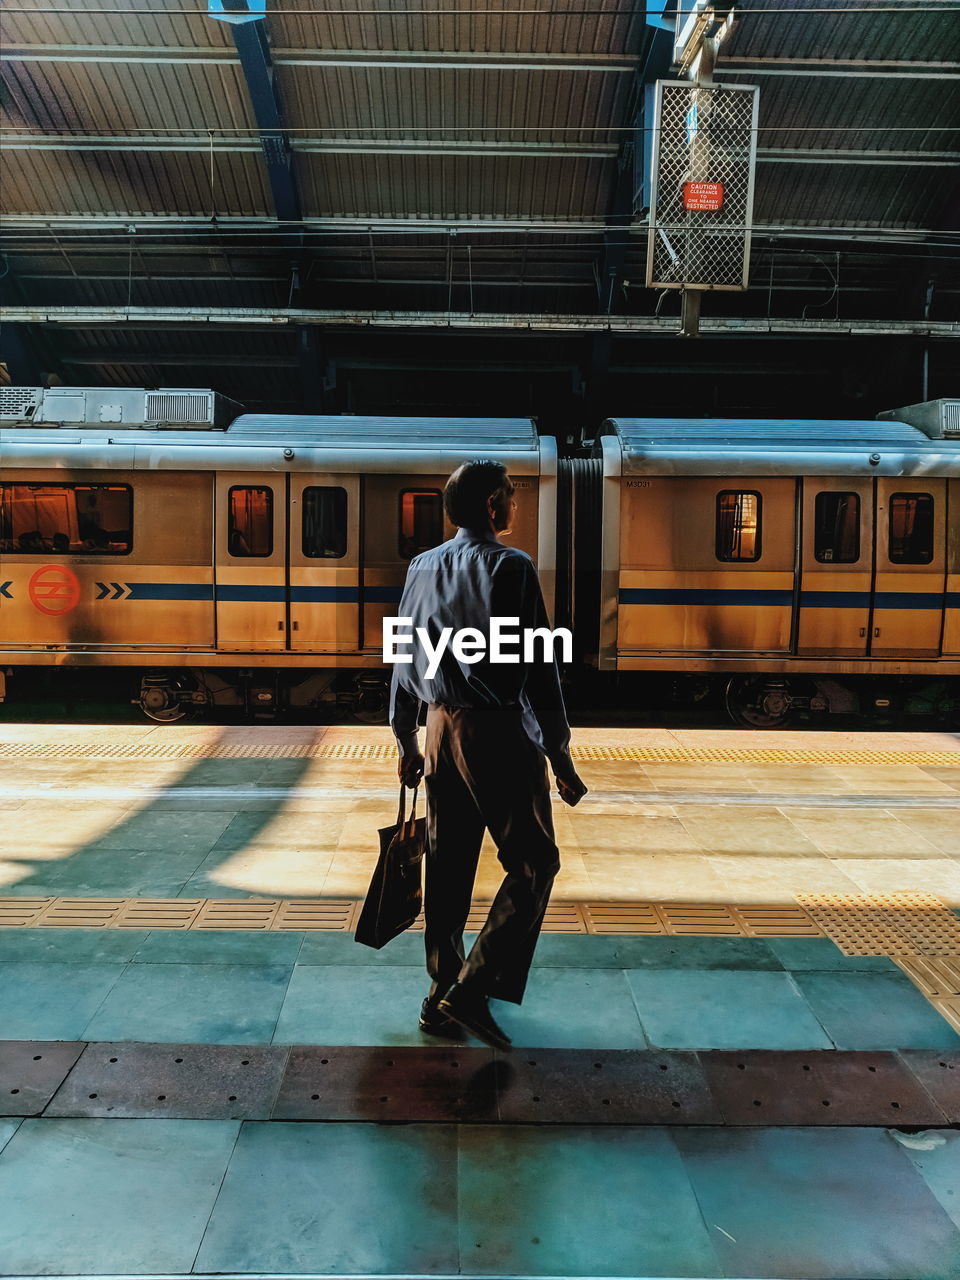 public transportation, real people, transportation, mode of transportation, railroad station platform, rail transportation, railroad station, men, train, train - vehicle, one person, lifestyles, casual clothing, full length, rear view, leisure activity, standing, travel, architecture, track, waiting, platform